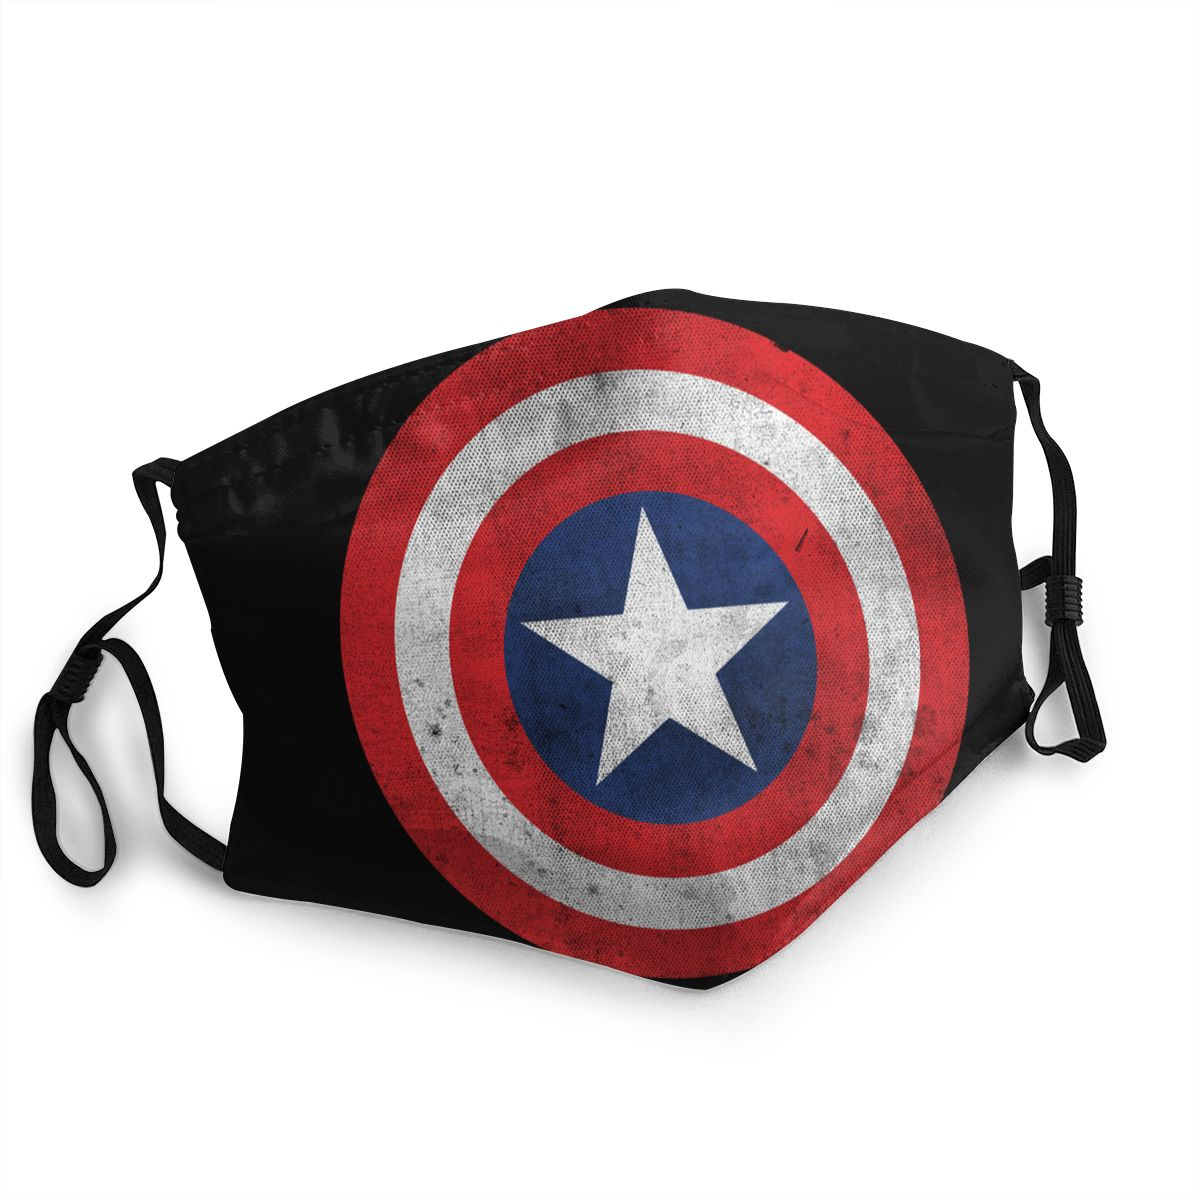 Captain America Shield Distressed Reusable Face Mask Anti Bacterial Dustproof Protection Cover Respirator